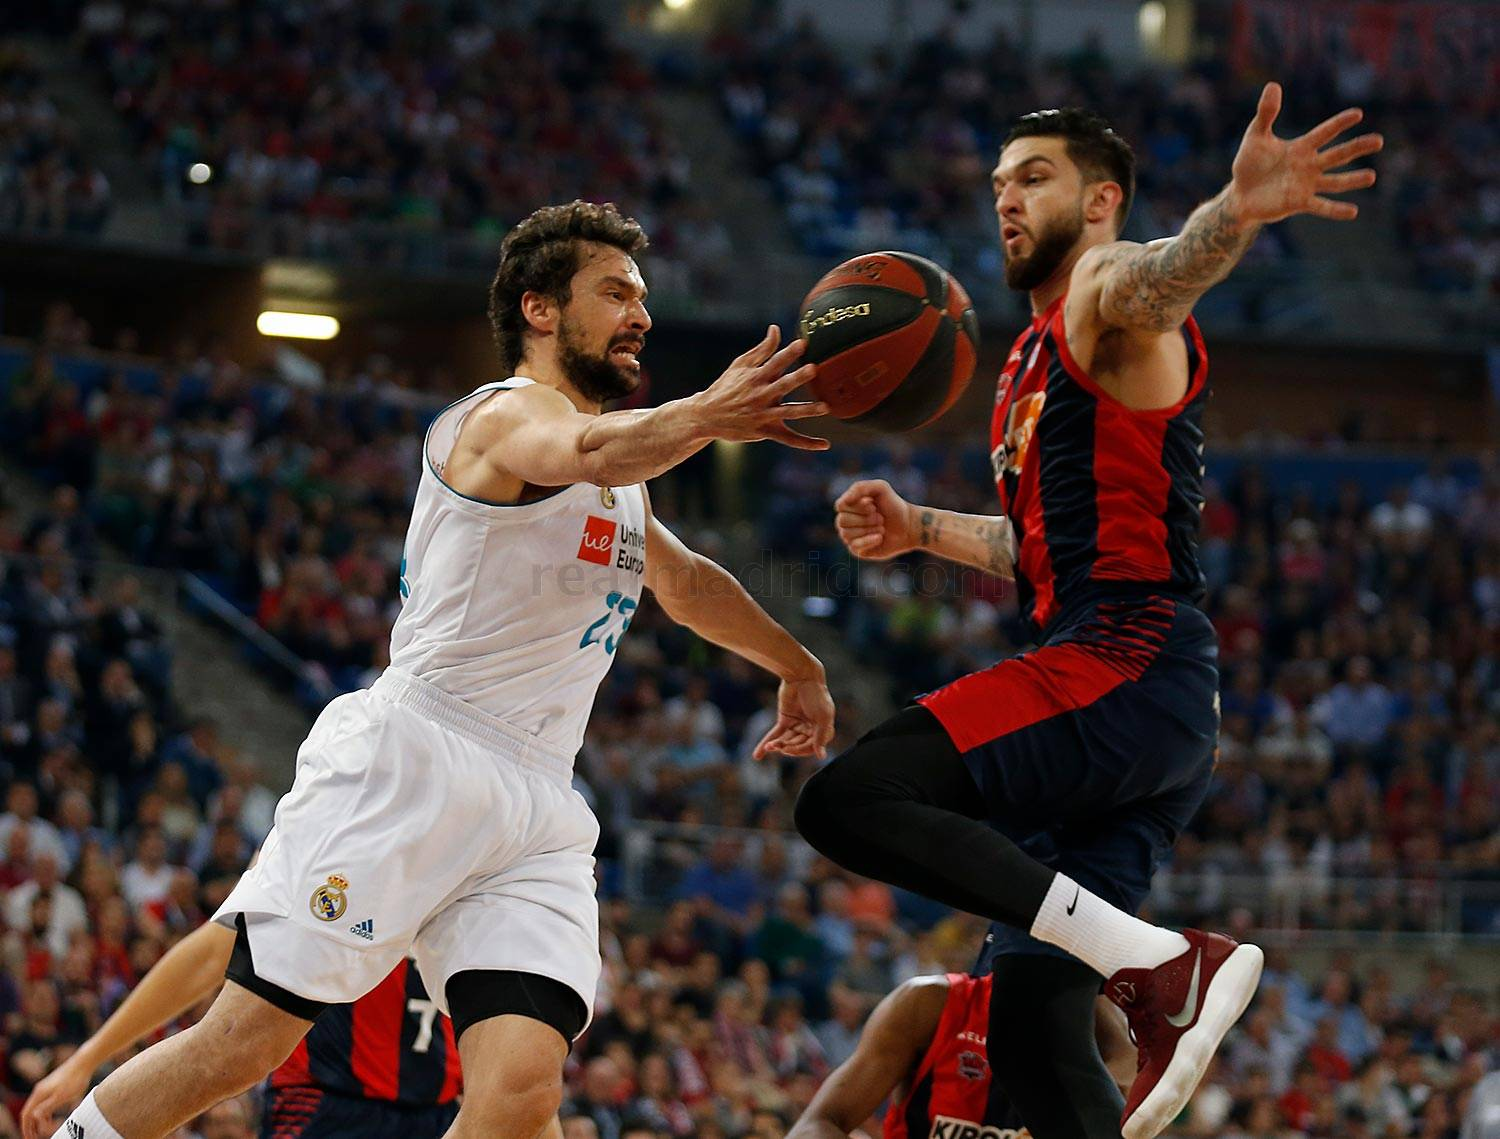 Real Madrid - Kirolbet Baskonia - Real Madrid  - 19-06-2018